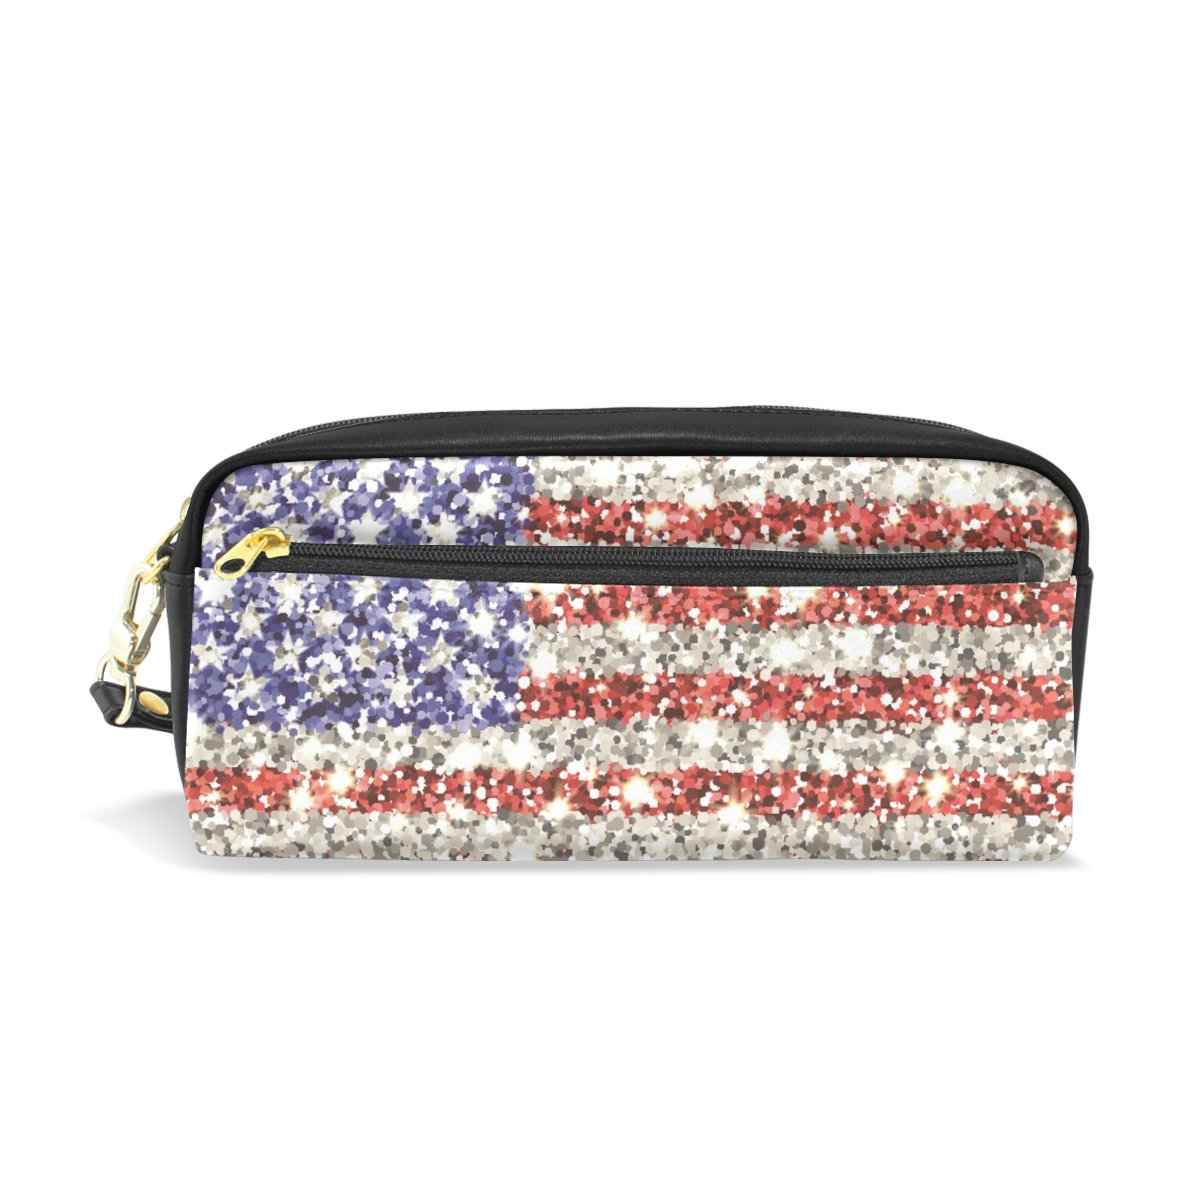 Pencil Case Pouch Storage America Sparkling Flag Stationery Cosmetic Makeup Wristlets Bag Zipper